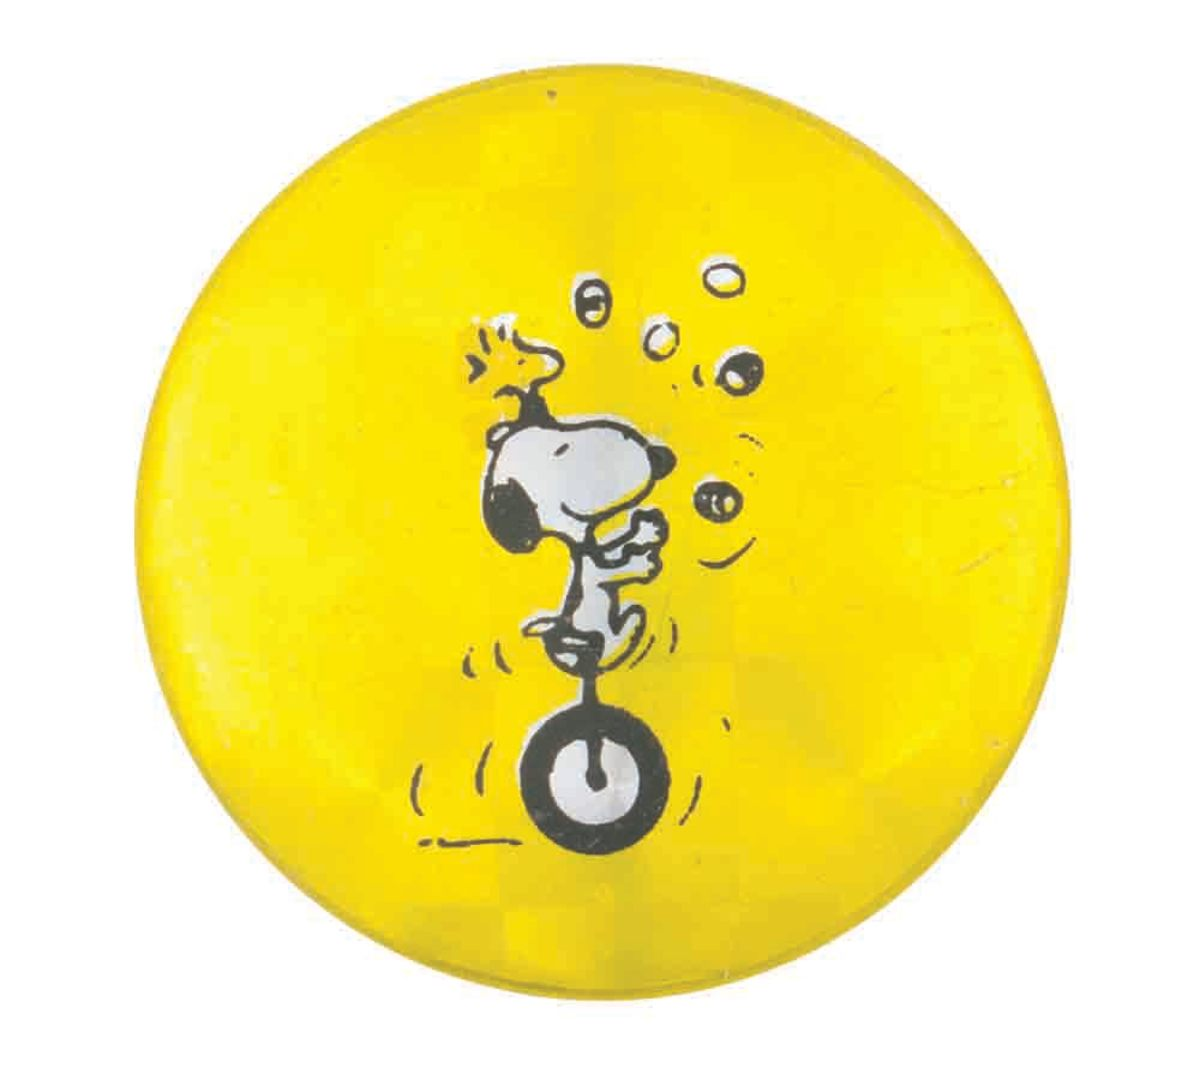 Snoopy and Woodstock button.